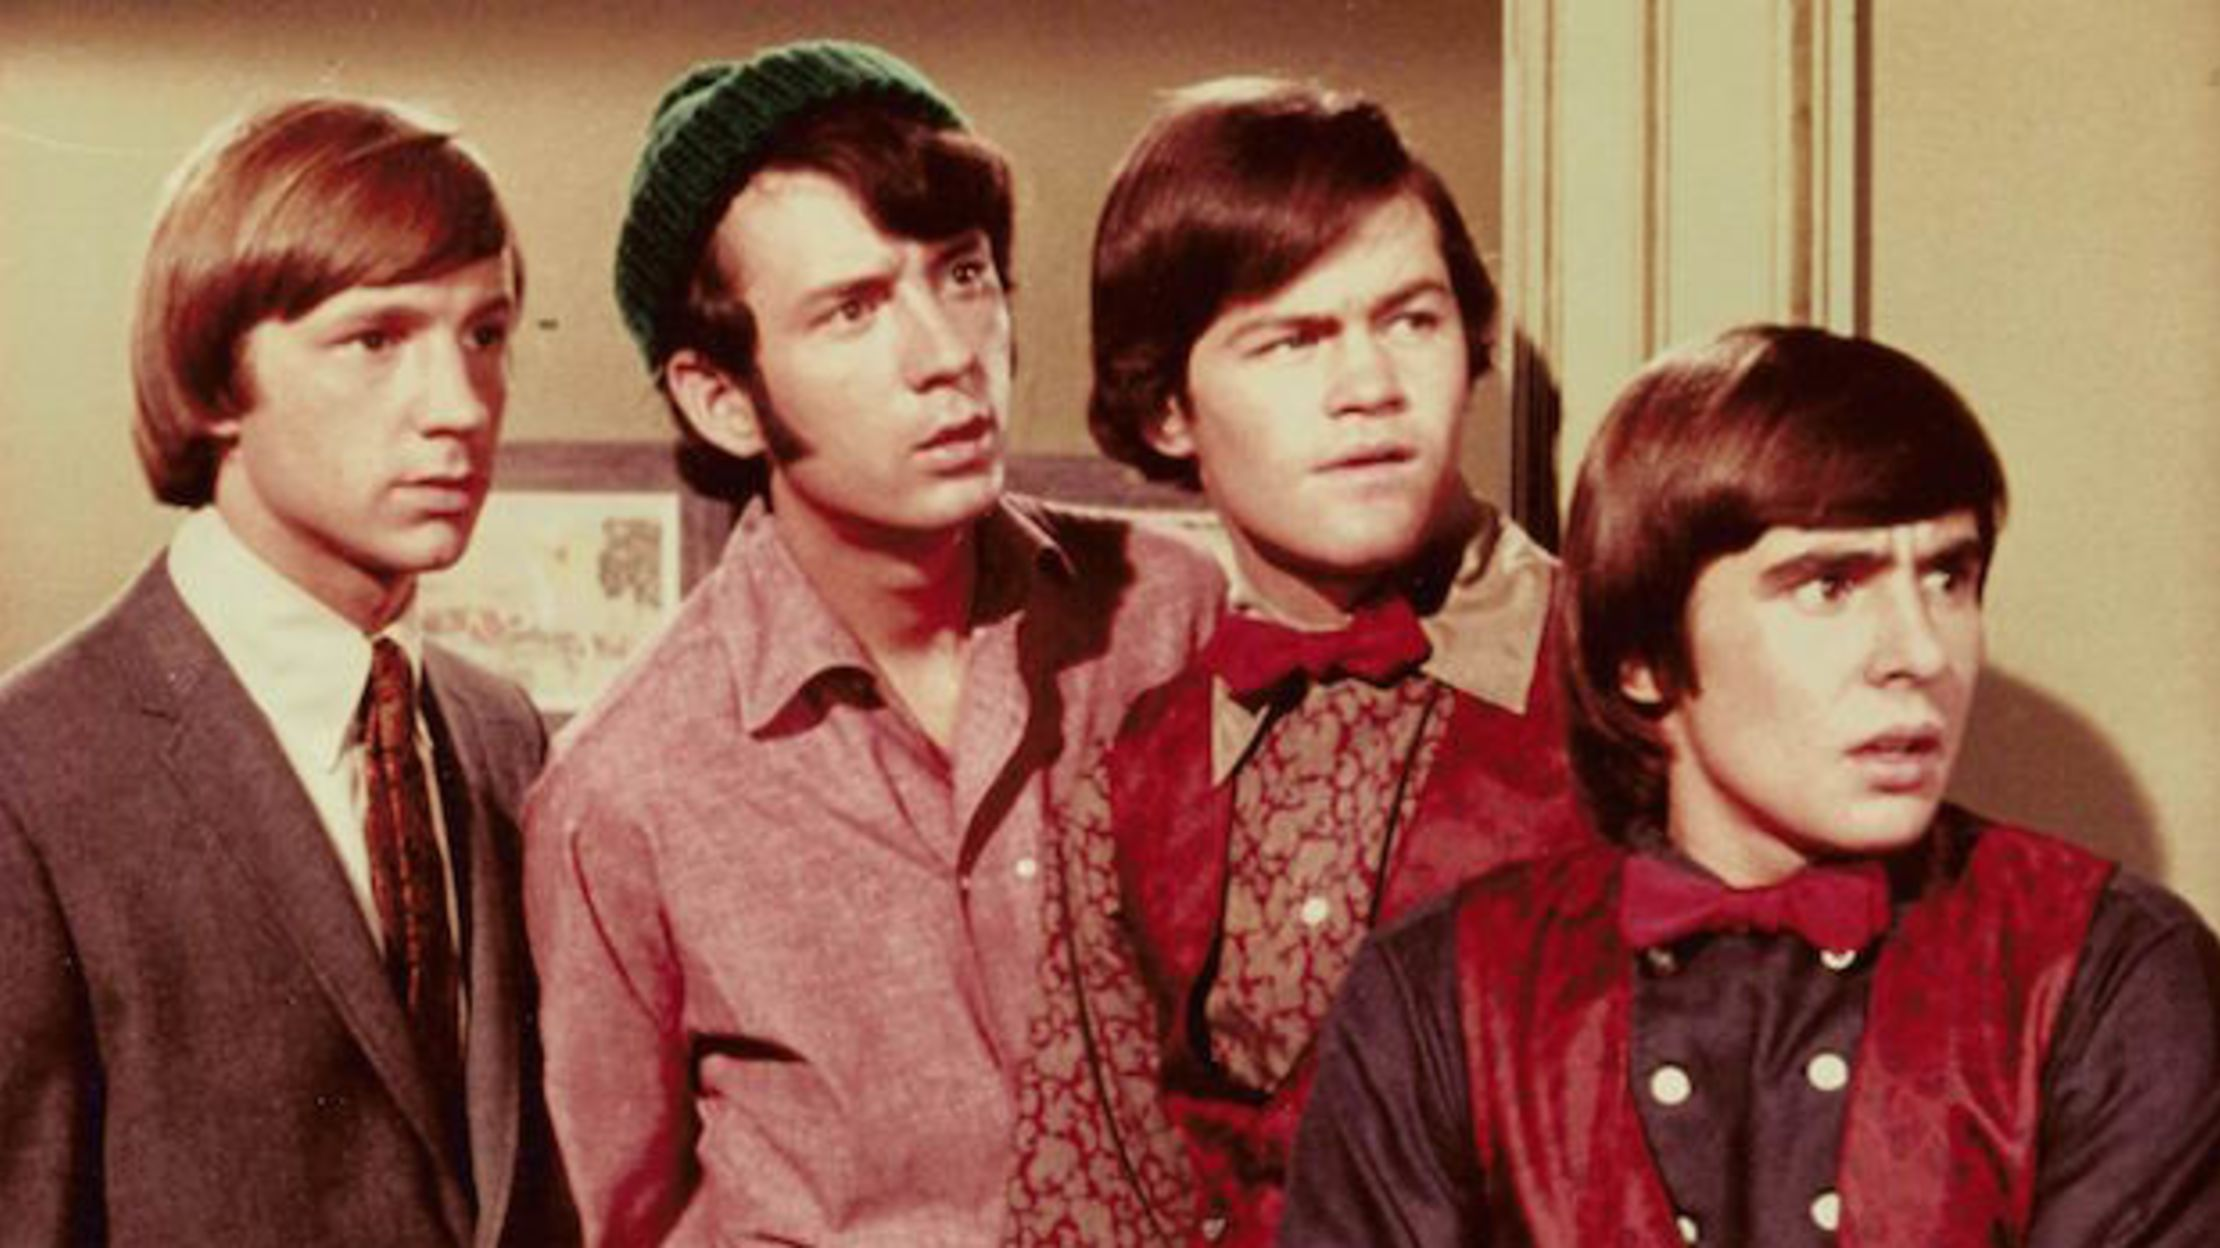 8 x 10 All Wood Framed Photo The/_Monkees